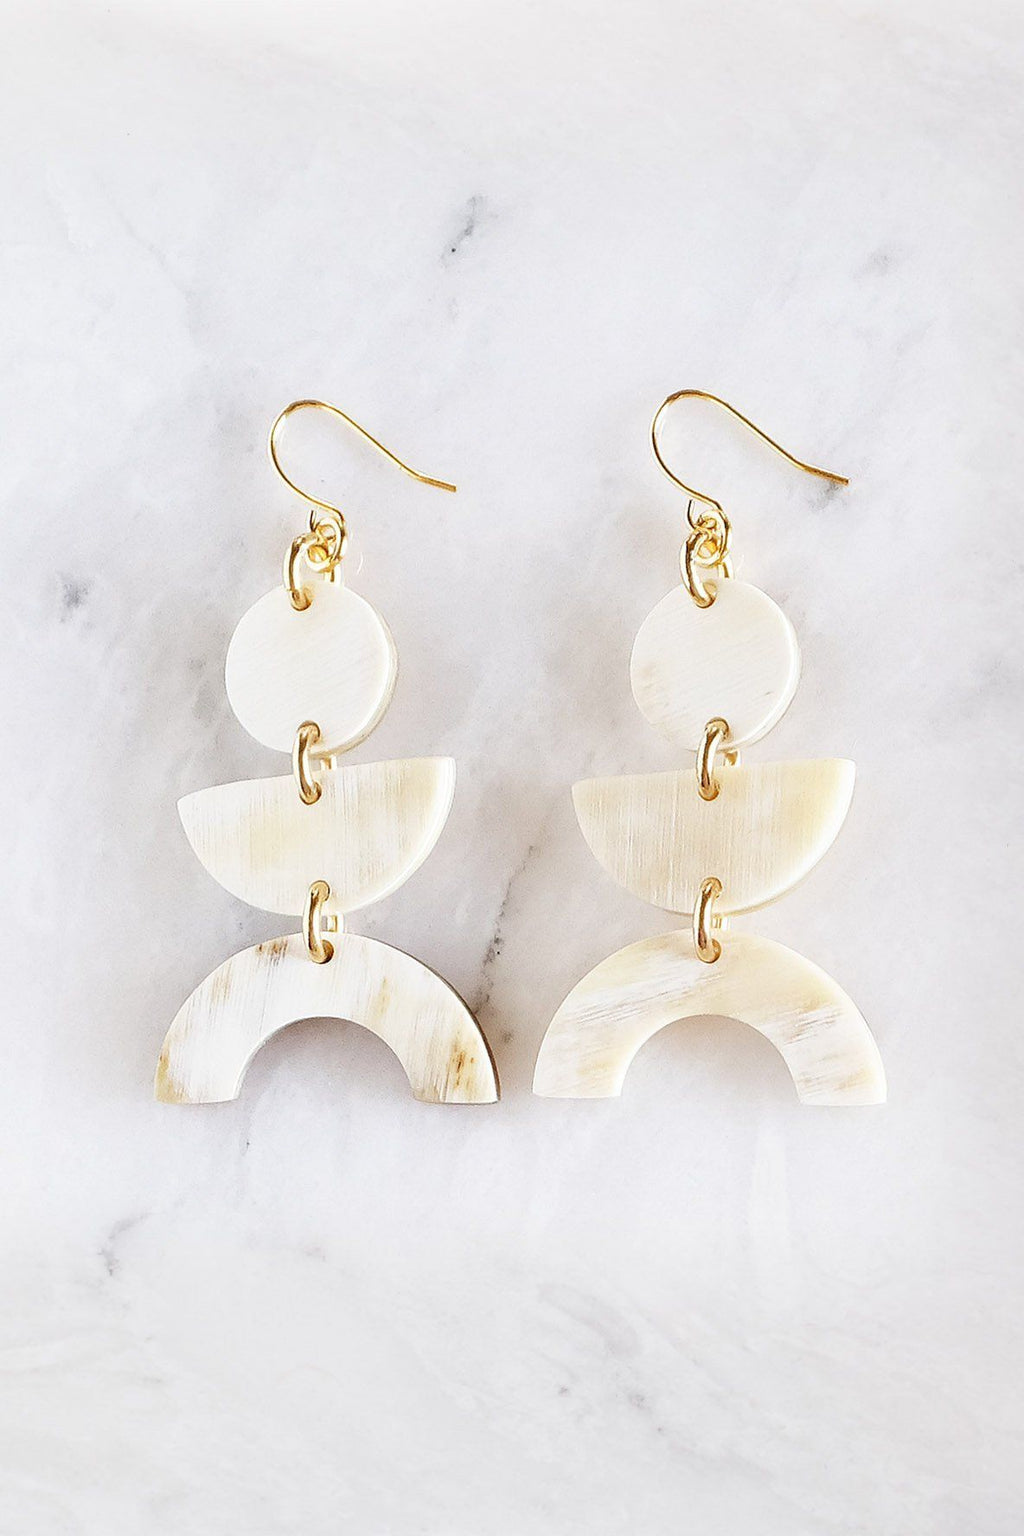 buffalo horn earrings vietnam